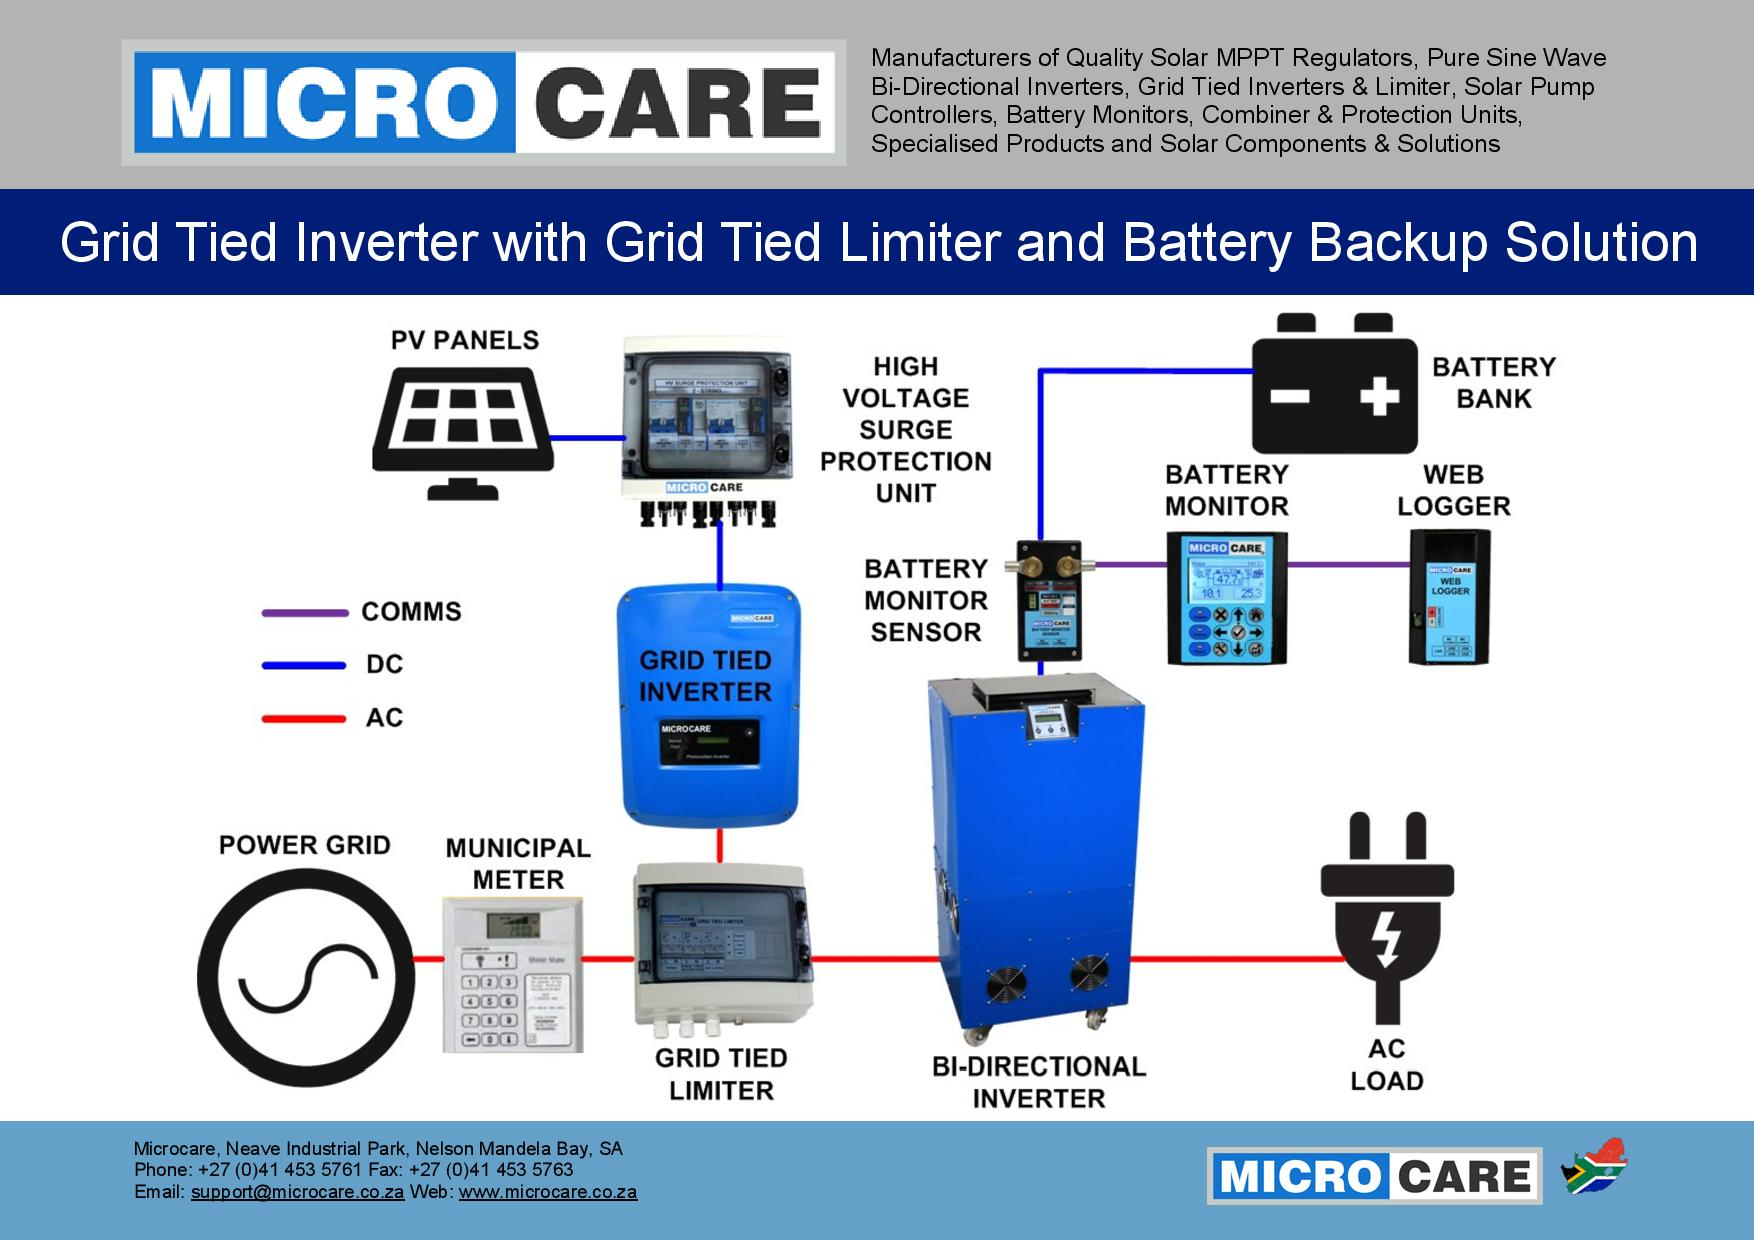 Microcare Grid Tied Inverter With Grid Tied Limiter And